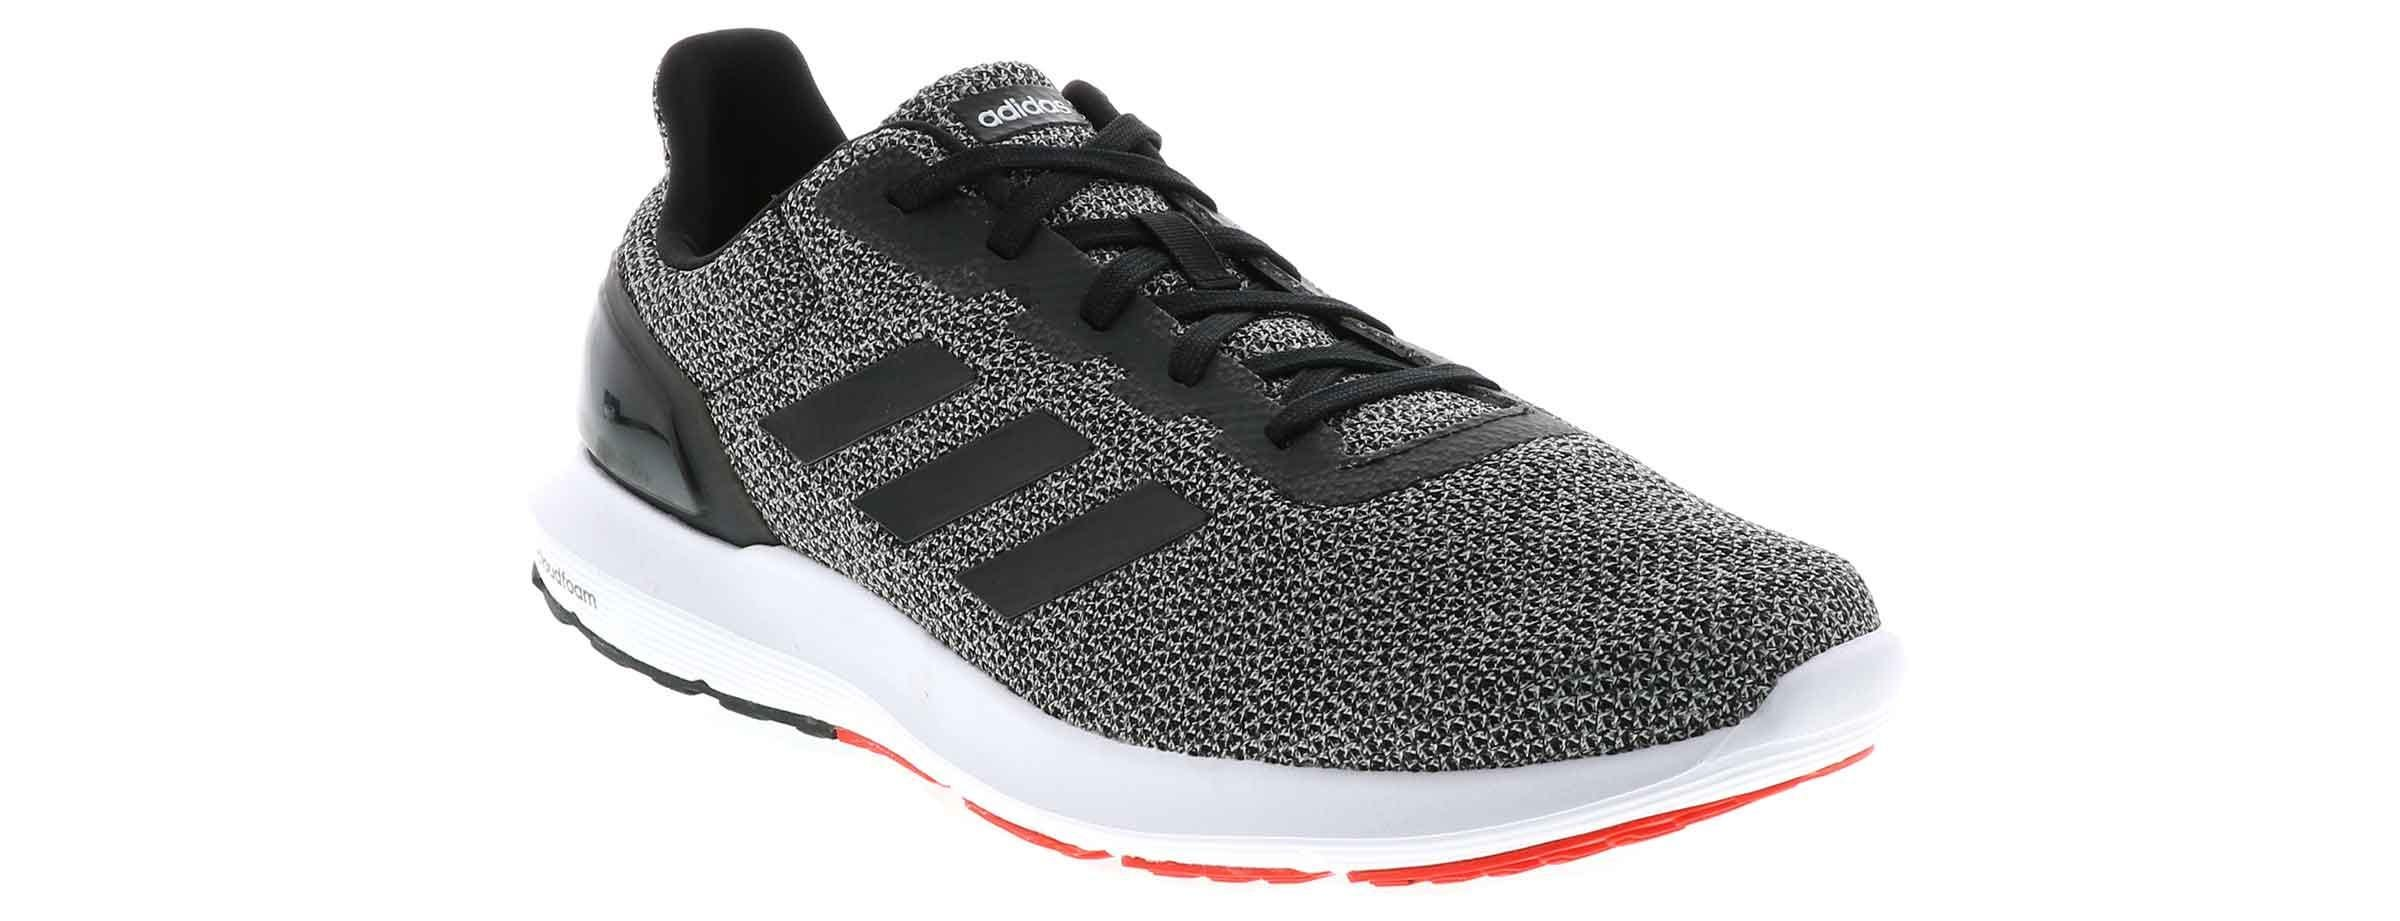 ADIDAS COSMIC 2 M Running Shoes For Men